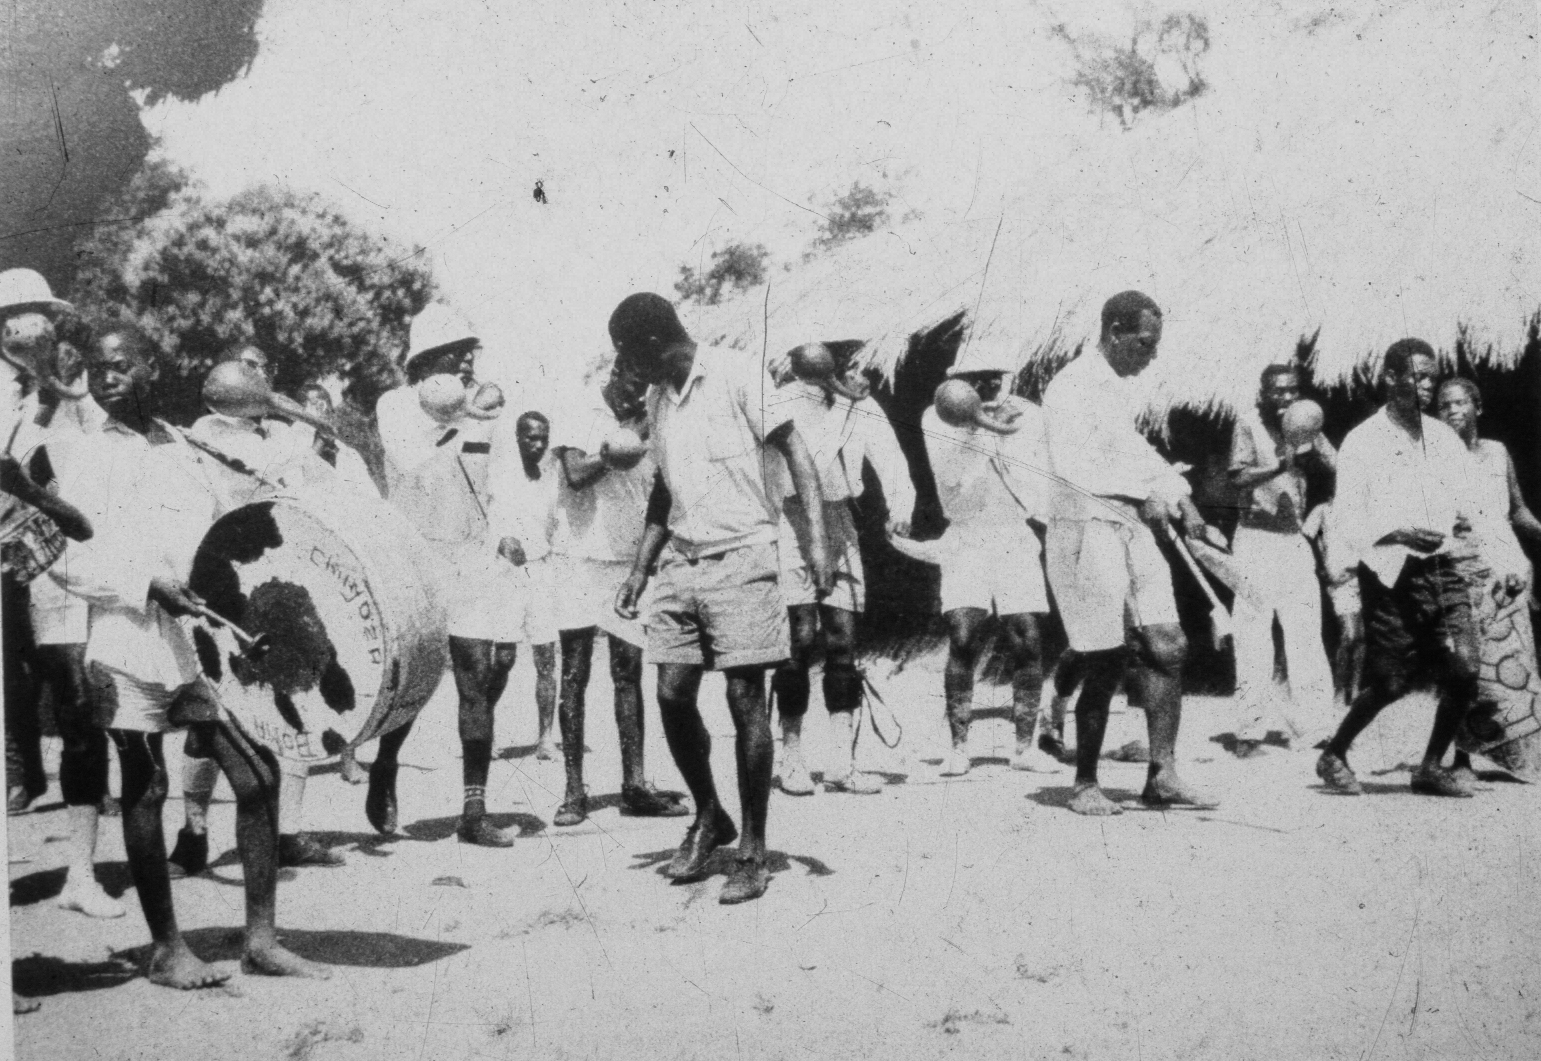 East African Mbeni band early 1900s